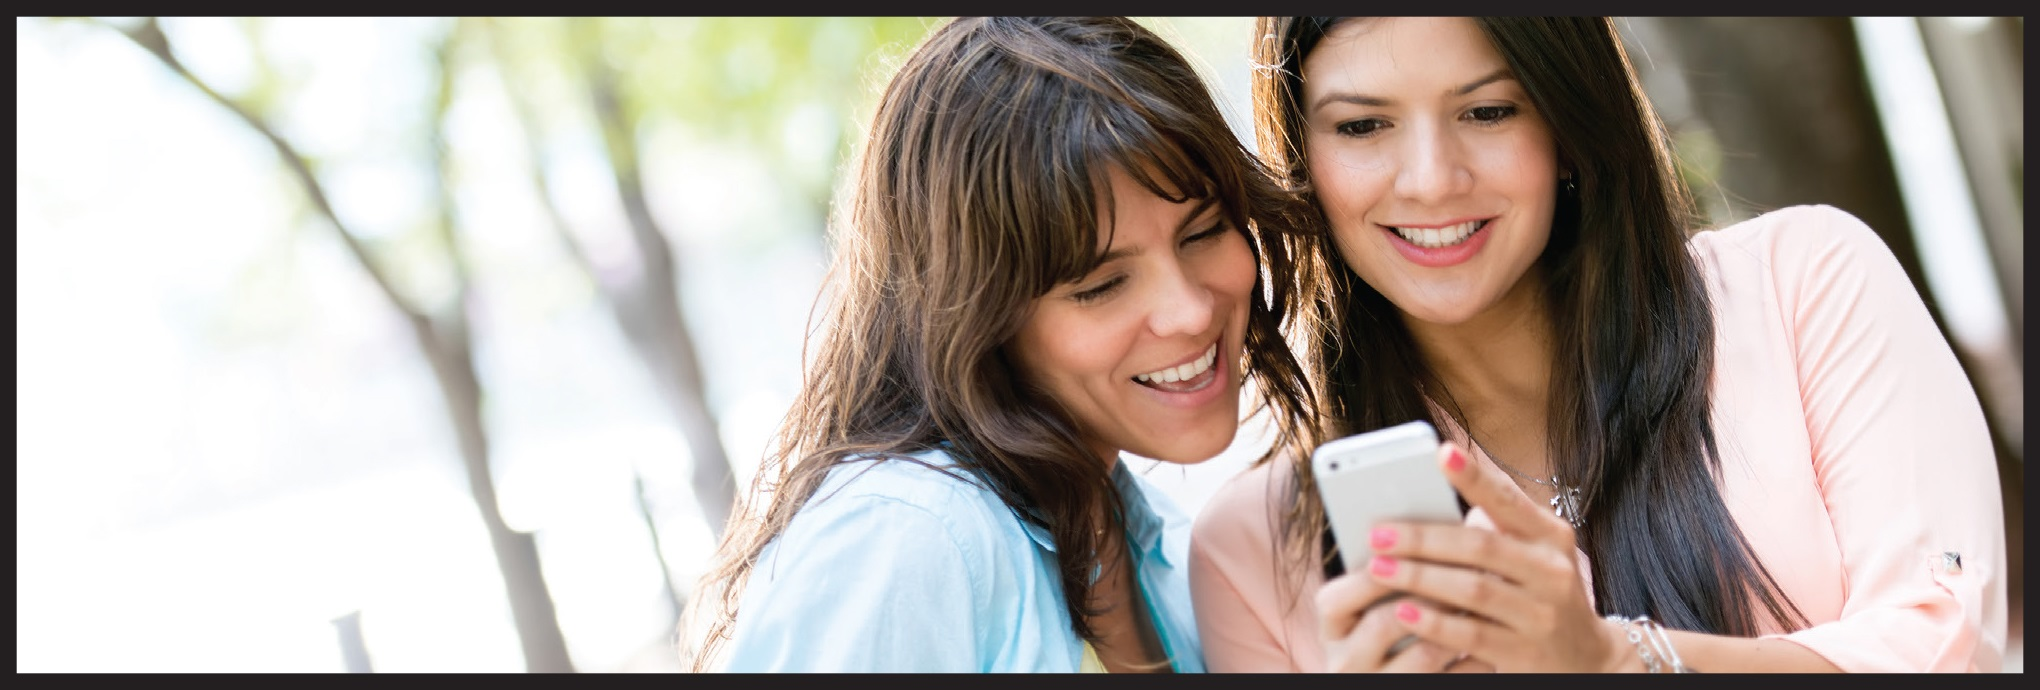 Women's Marketing - Multicultural Consumers